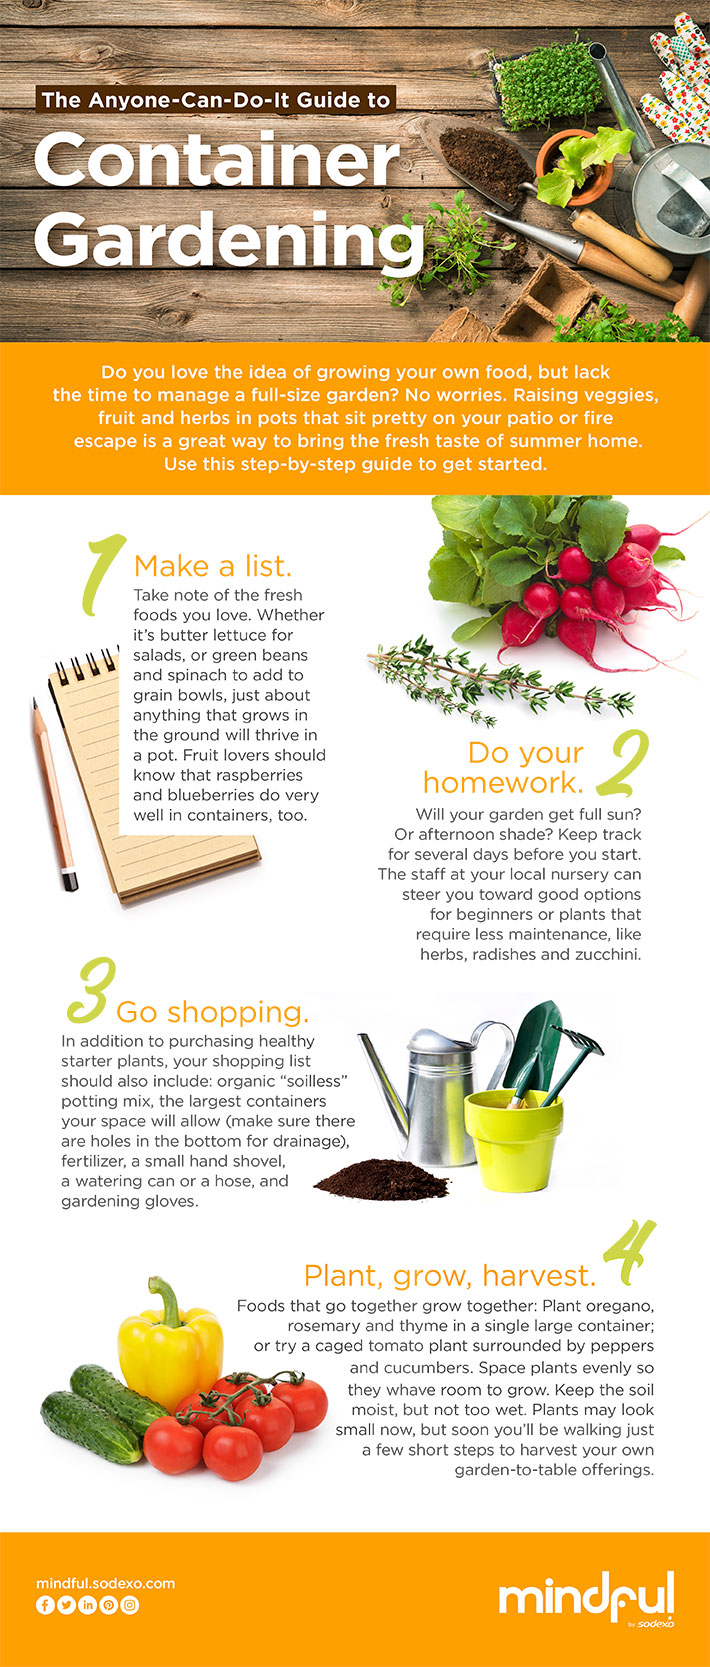 Container Gardening - Mindful by Sodexo